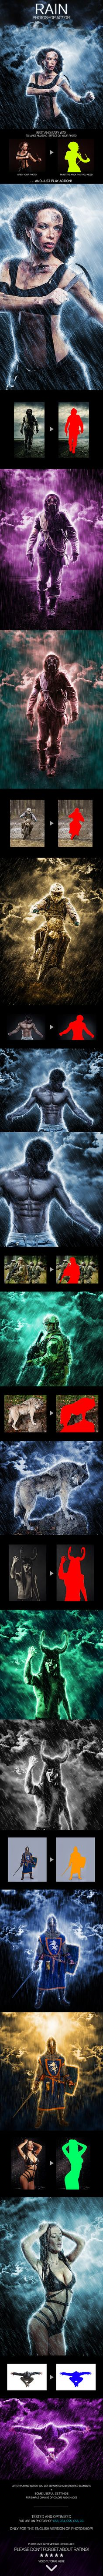 Rain Photoshop Action by Eugene-design Rain Action – this is an effect that creates a realistic rain on your photos. Action include a drop of rain, splashing and drippi Cool Photoshop, Effects Photoshop, Best Photoshop Actions, Photoshop Photos, Photoshop Design, Photoshop Photography, Photoshop Tutorial, Photography Tutorials, Creative Photography